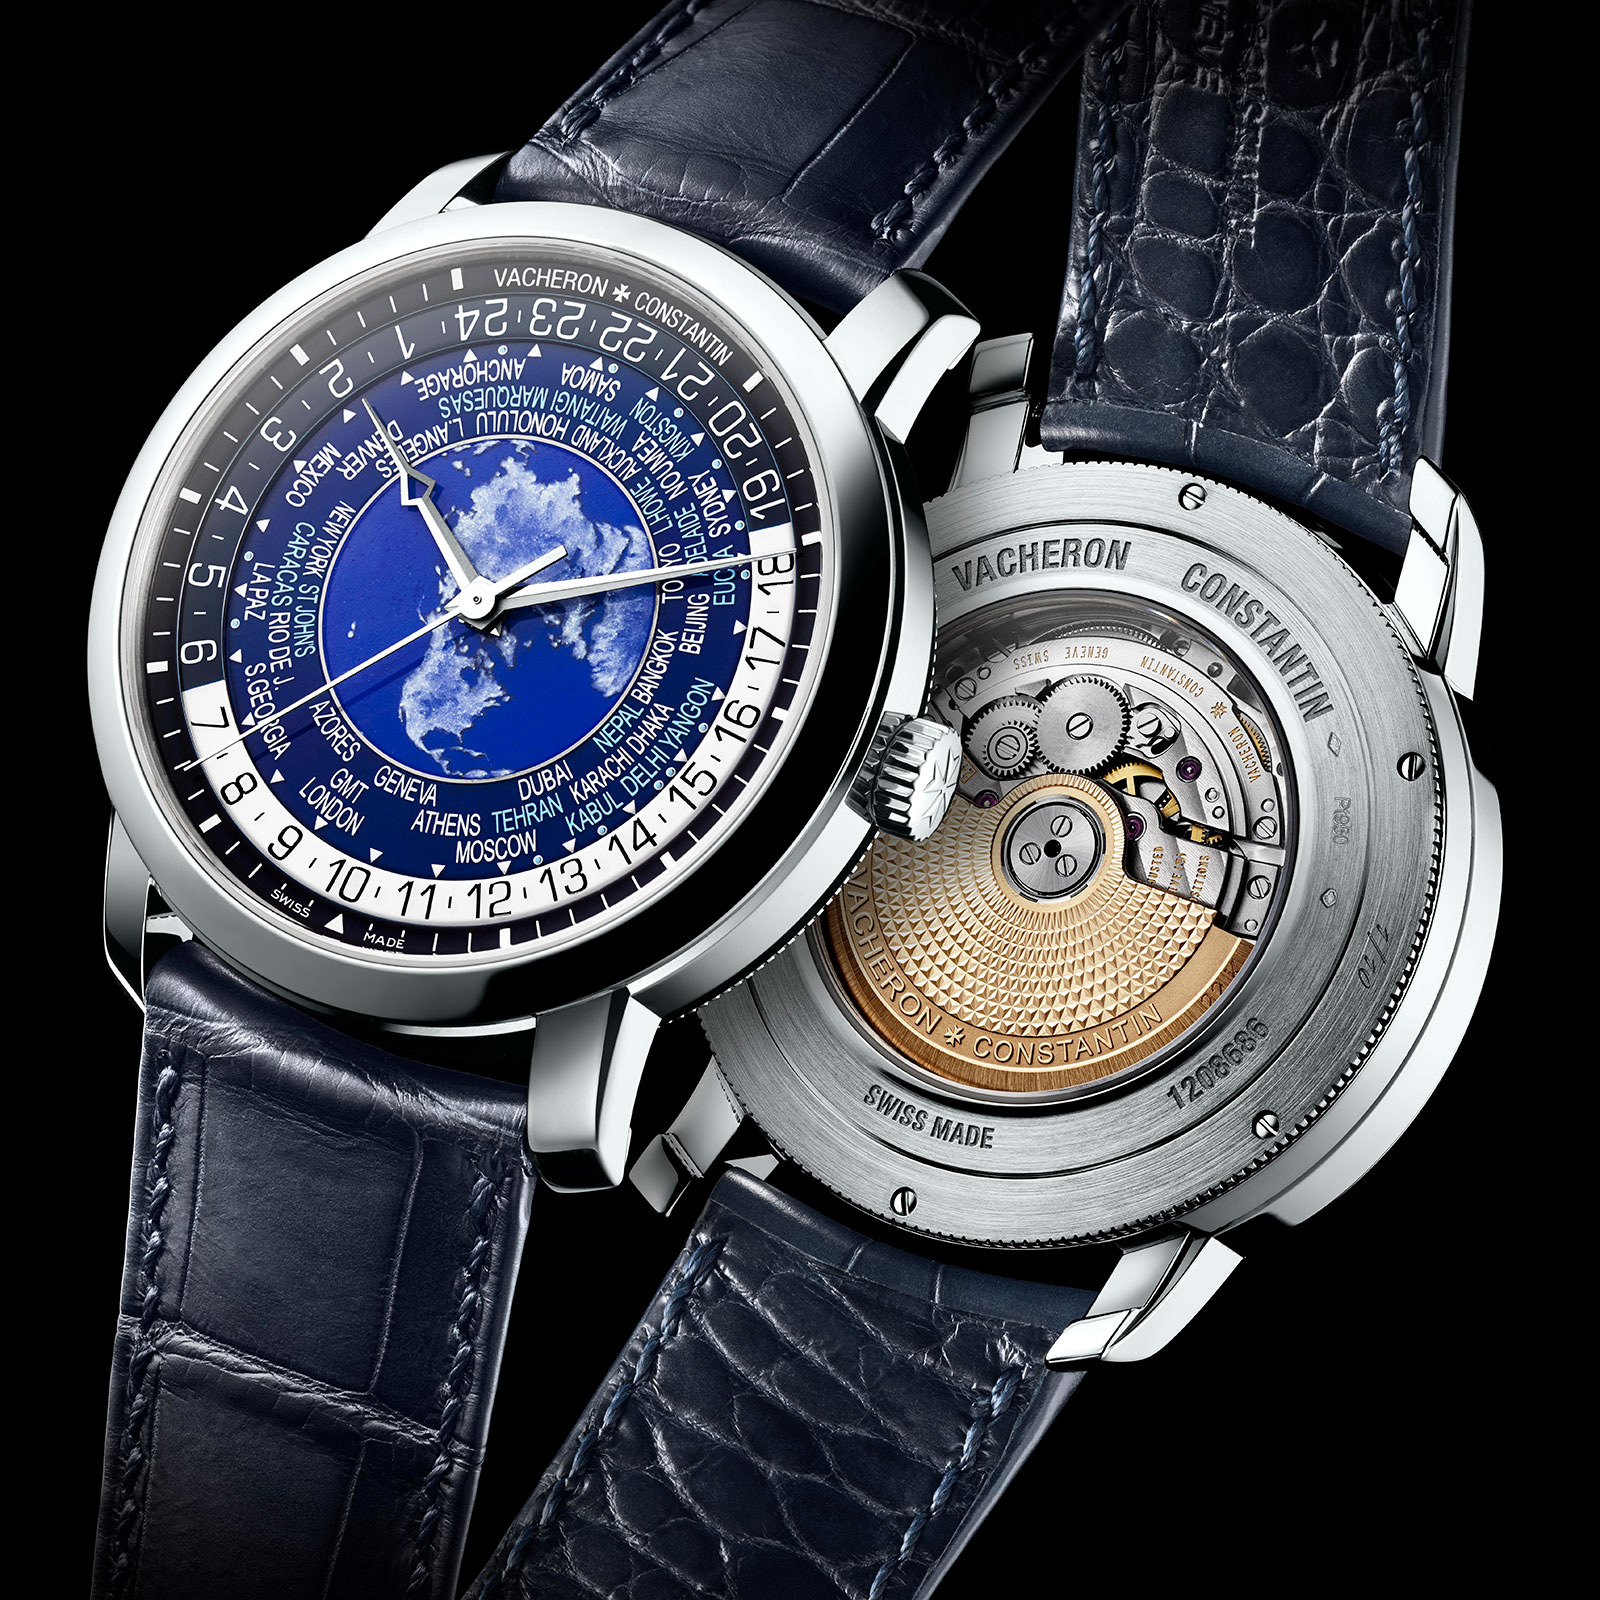 worldtimer clever bezel actuated crown with function time propilot worldtime oris dual launches watches big